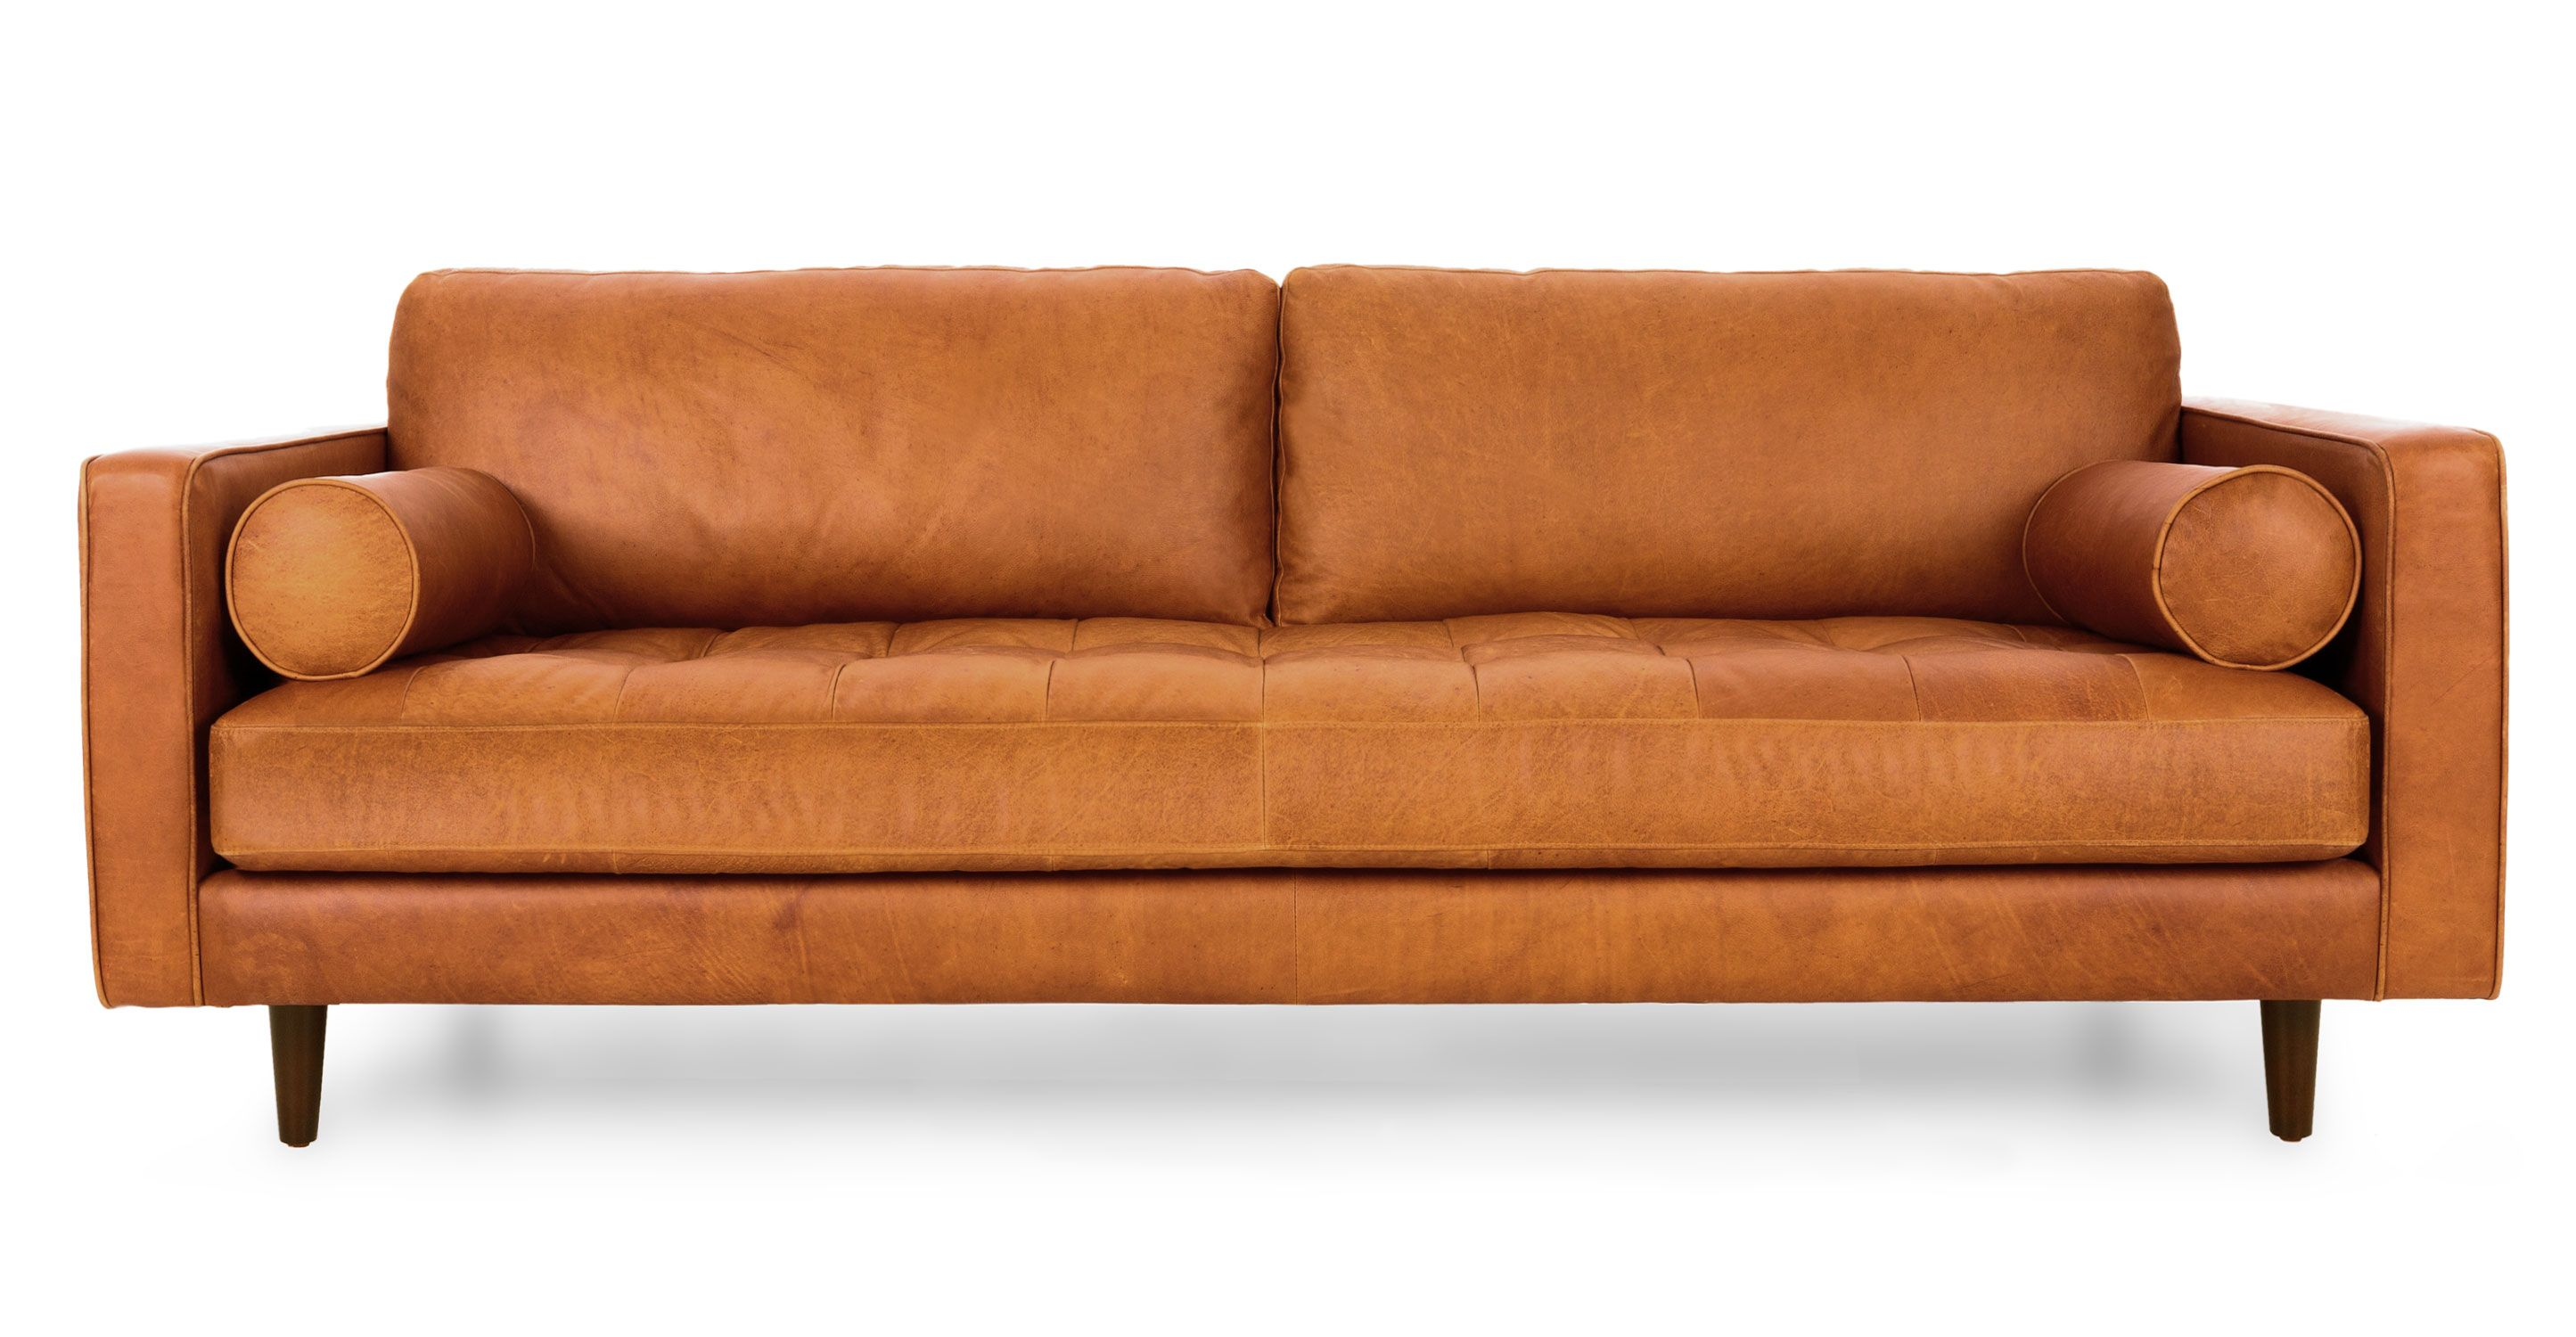 Tan brown leather sofa italian leather article sven for Modern sectional sofas